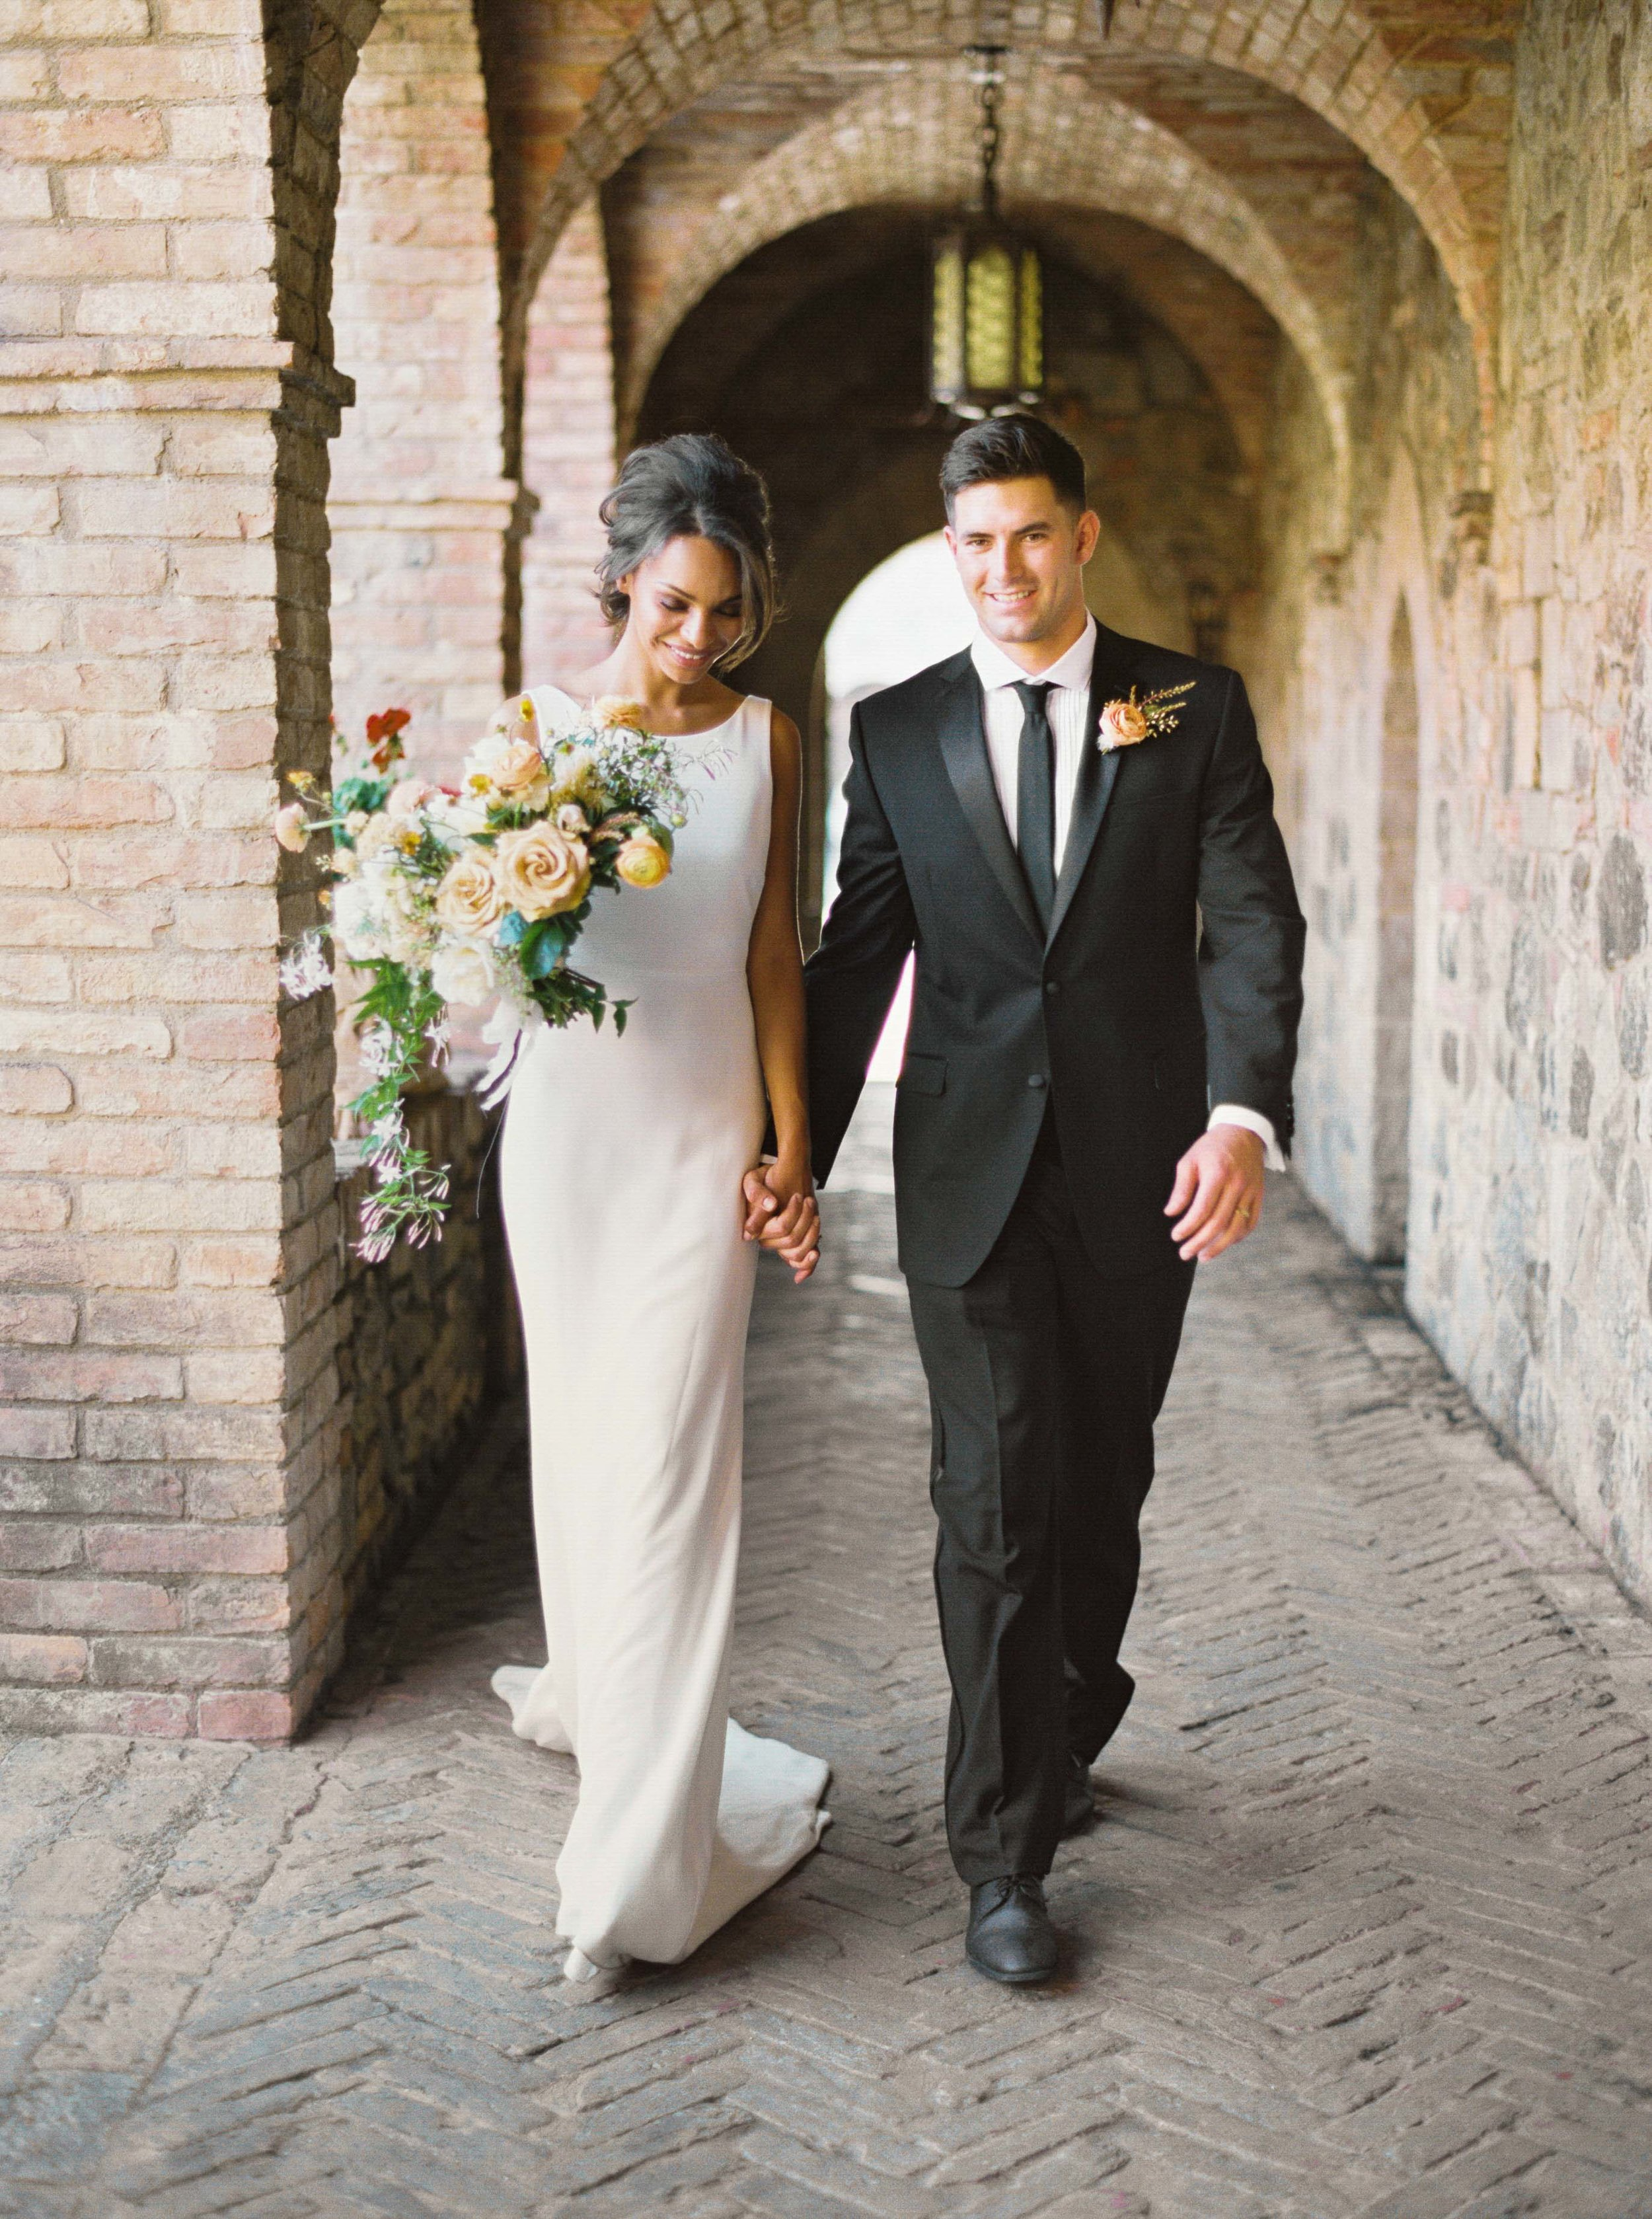 044napa_wedding_photographer_and_videographer_destination_and_elopement_photography.jpg